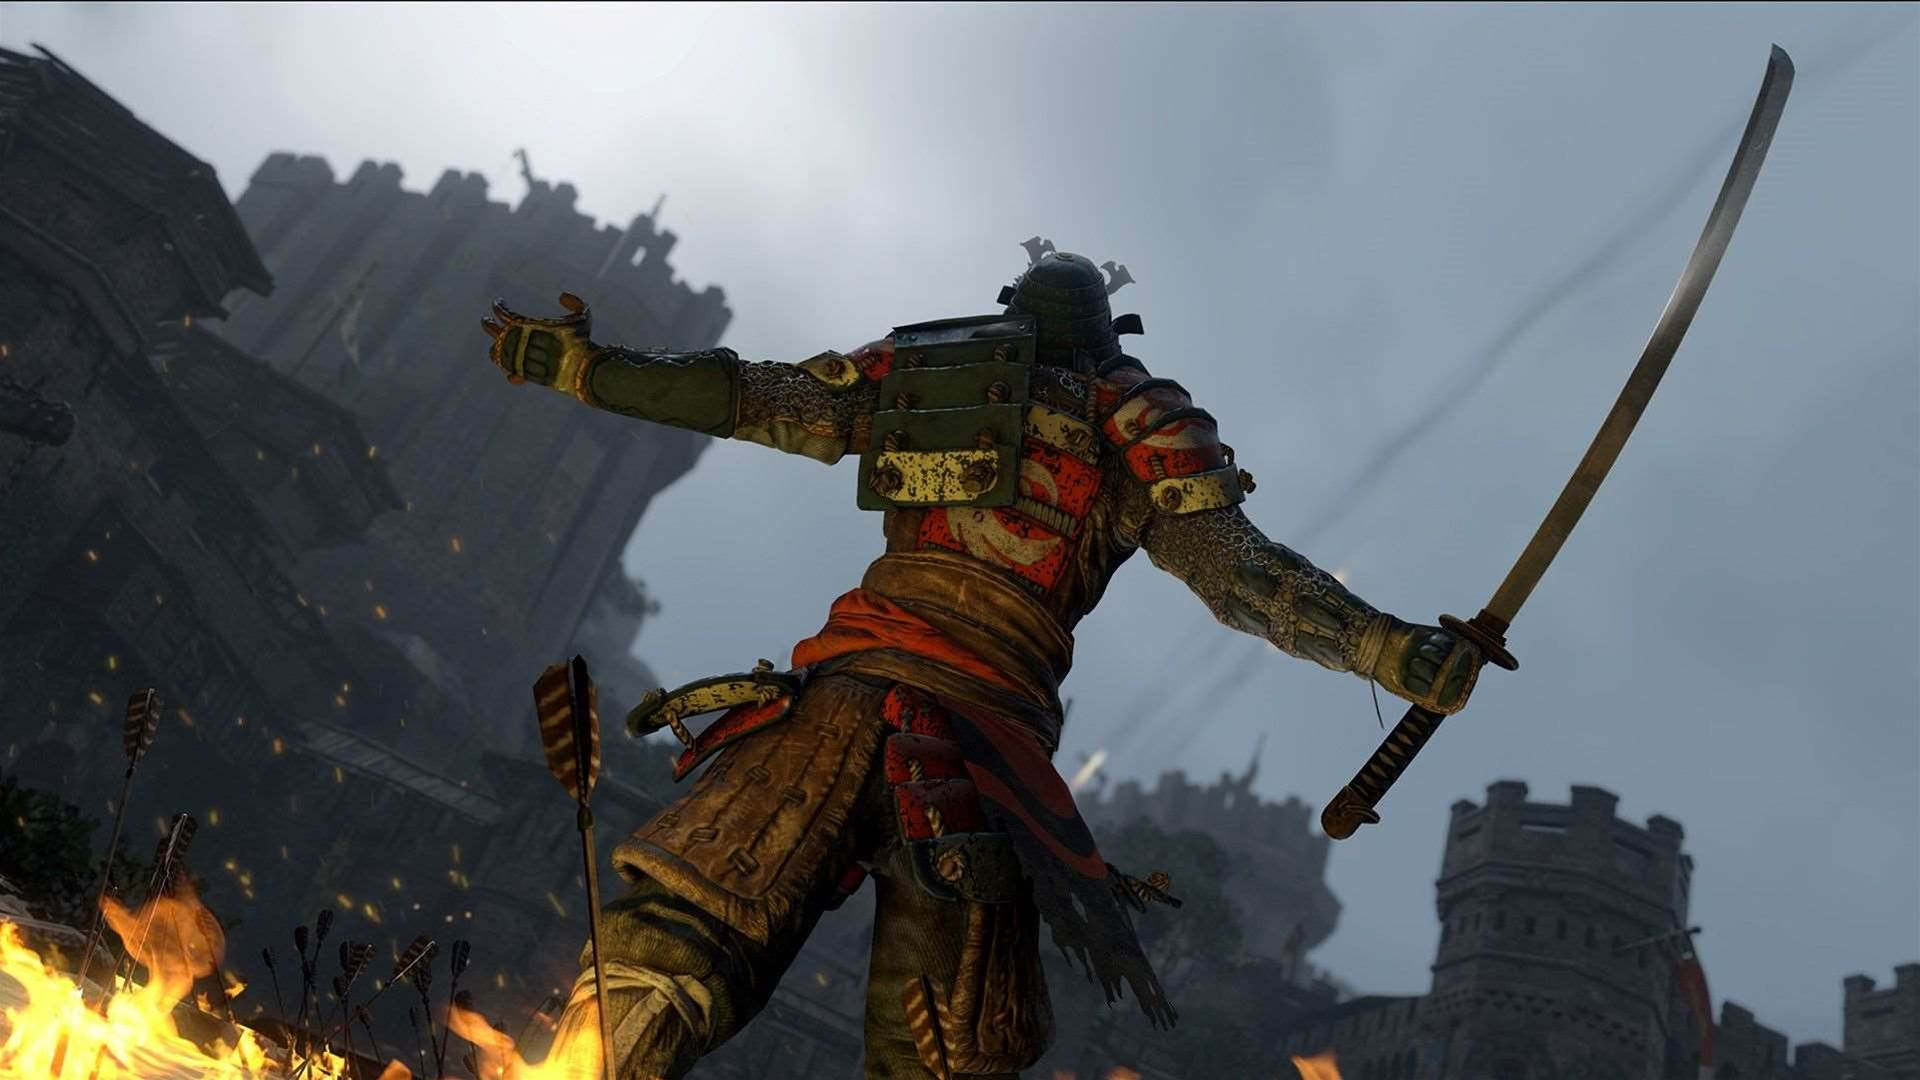 A heap of honourable For Honor images